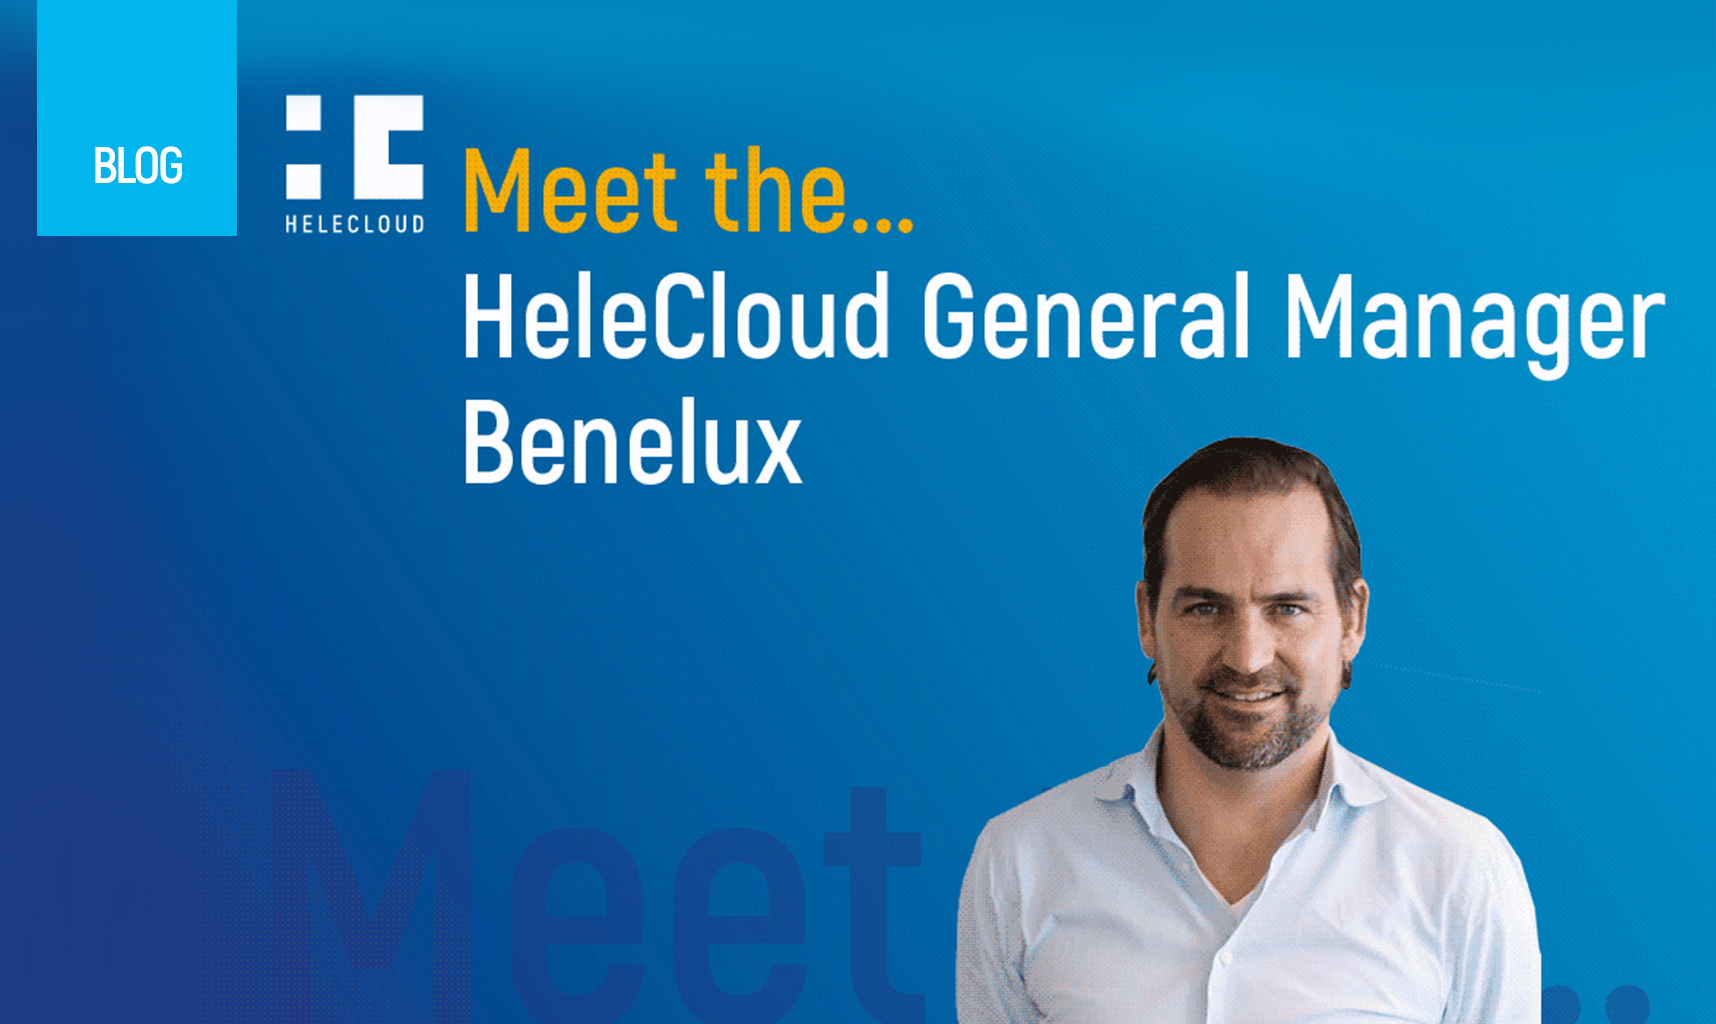 Meet the.. HeleCloud General Manager Benelux